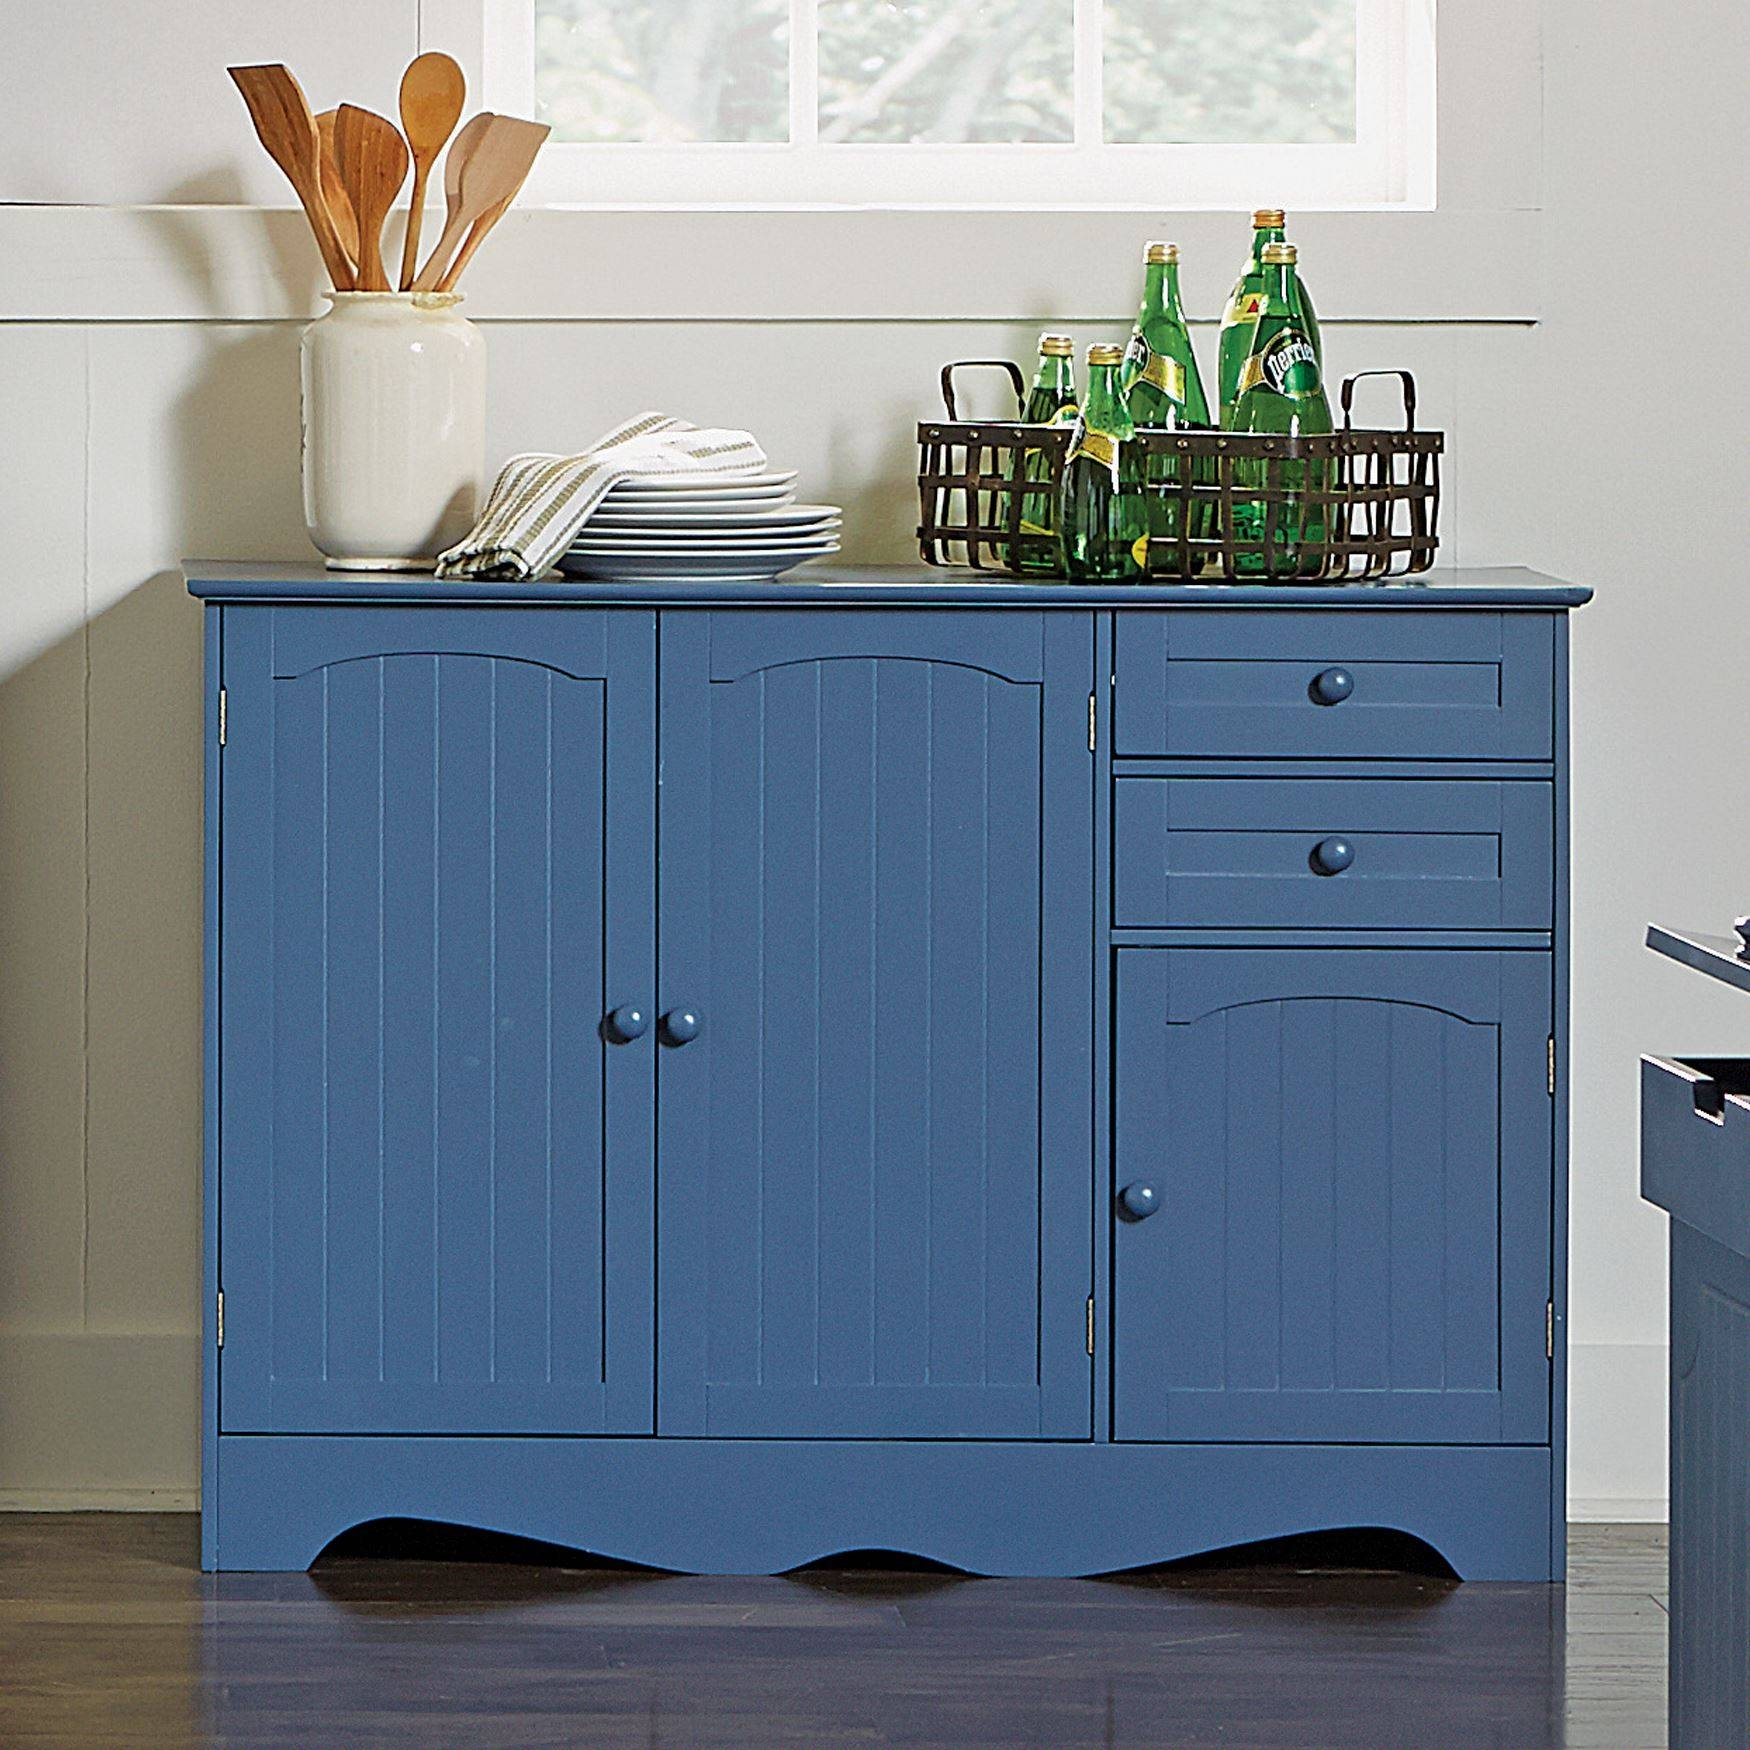 Kitchen : Contemporary Sideboards Buffet And Hutch Small Sideboard Pertaining To White Kitchen Sideboards (View 8 of 15)